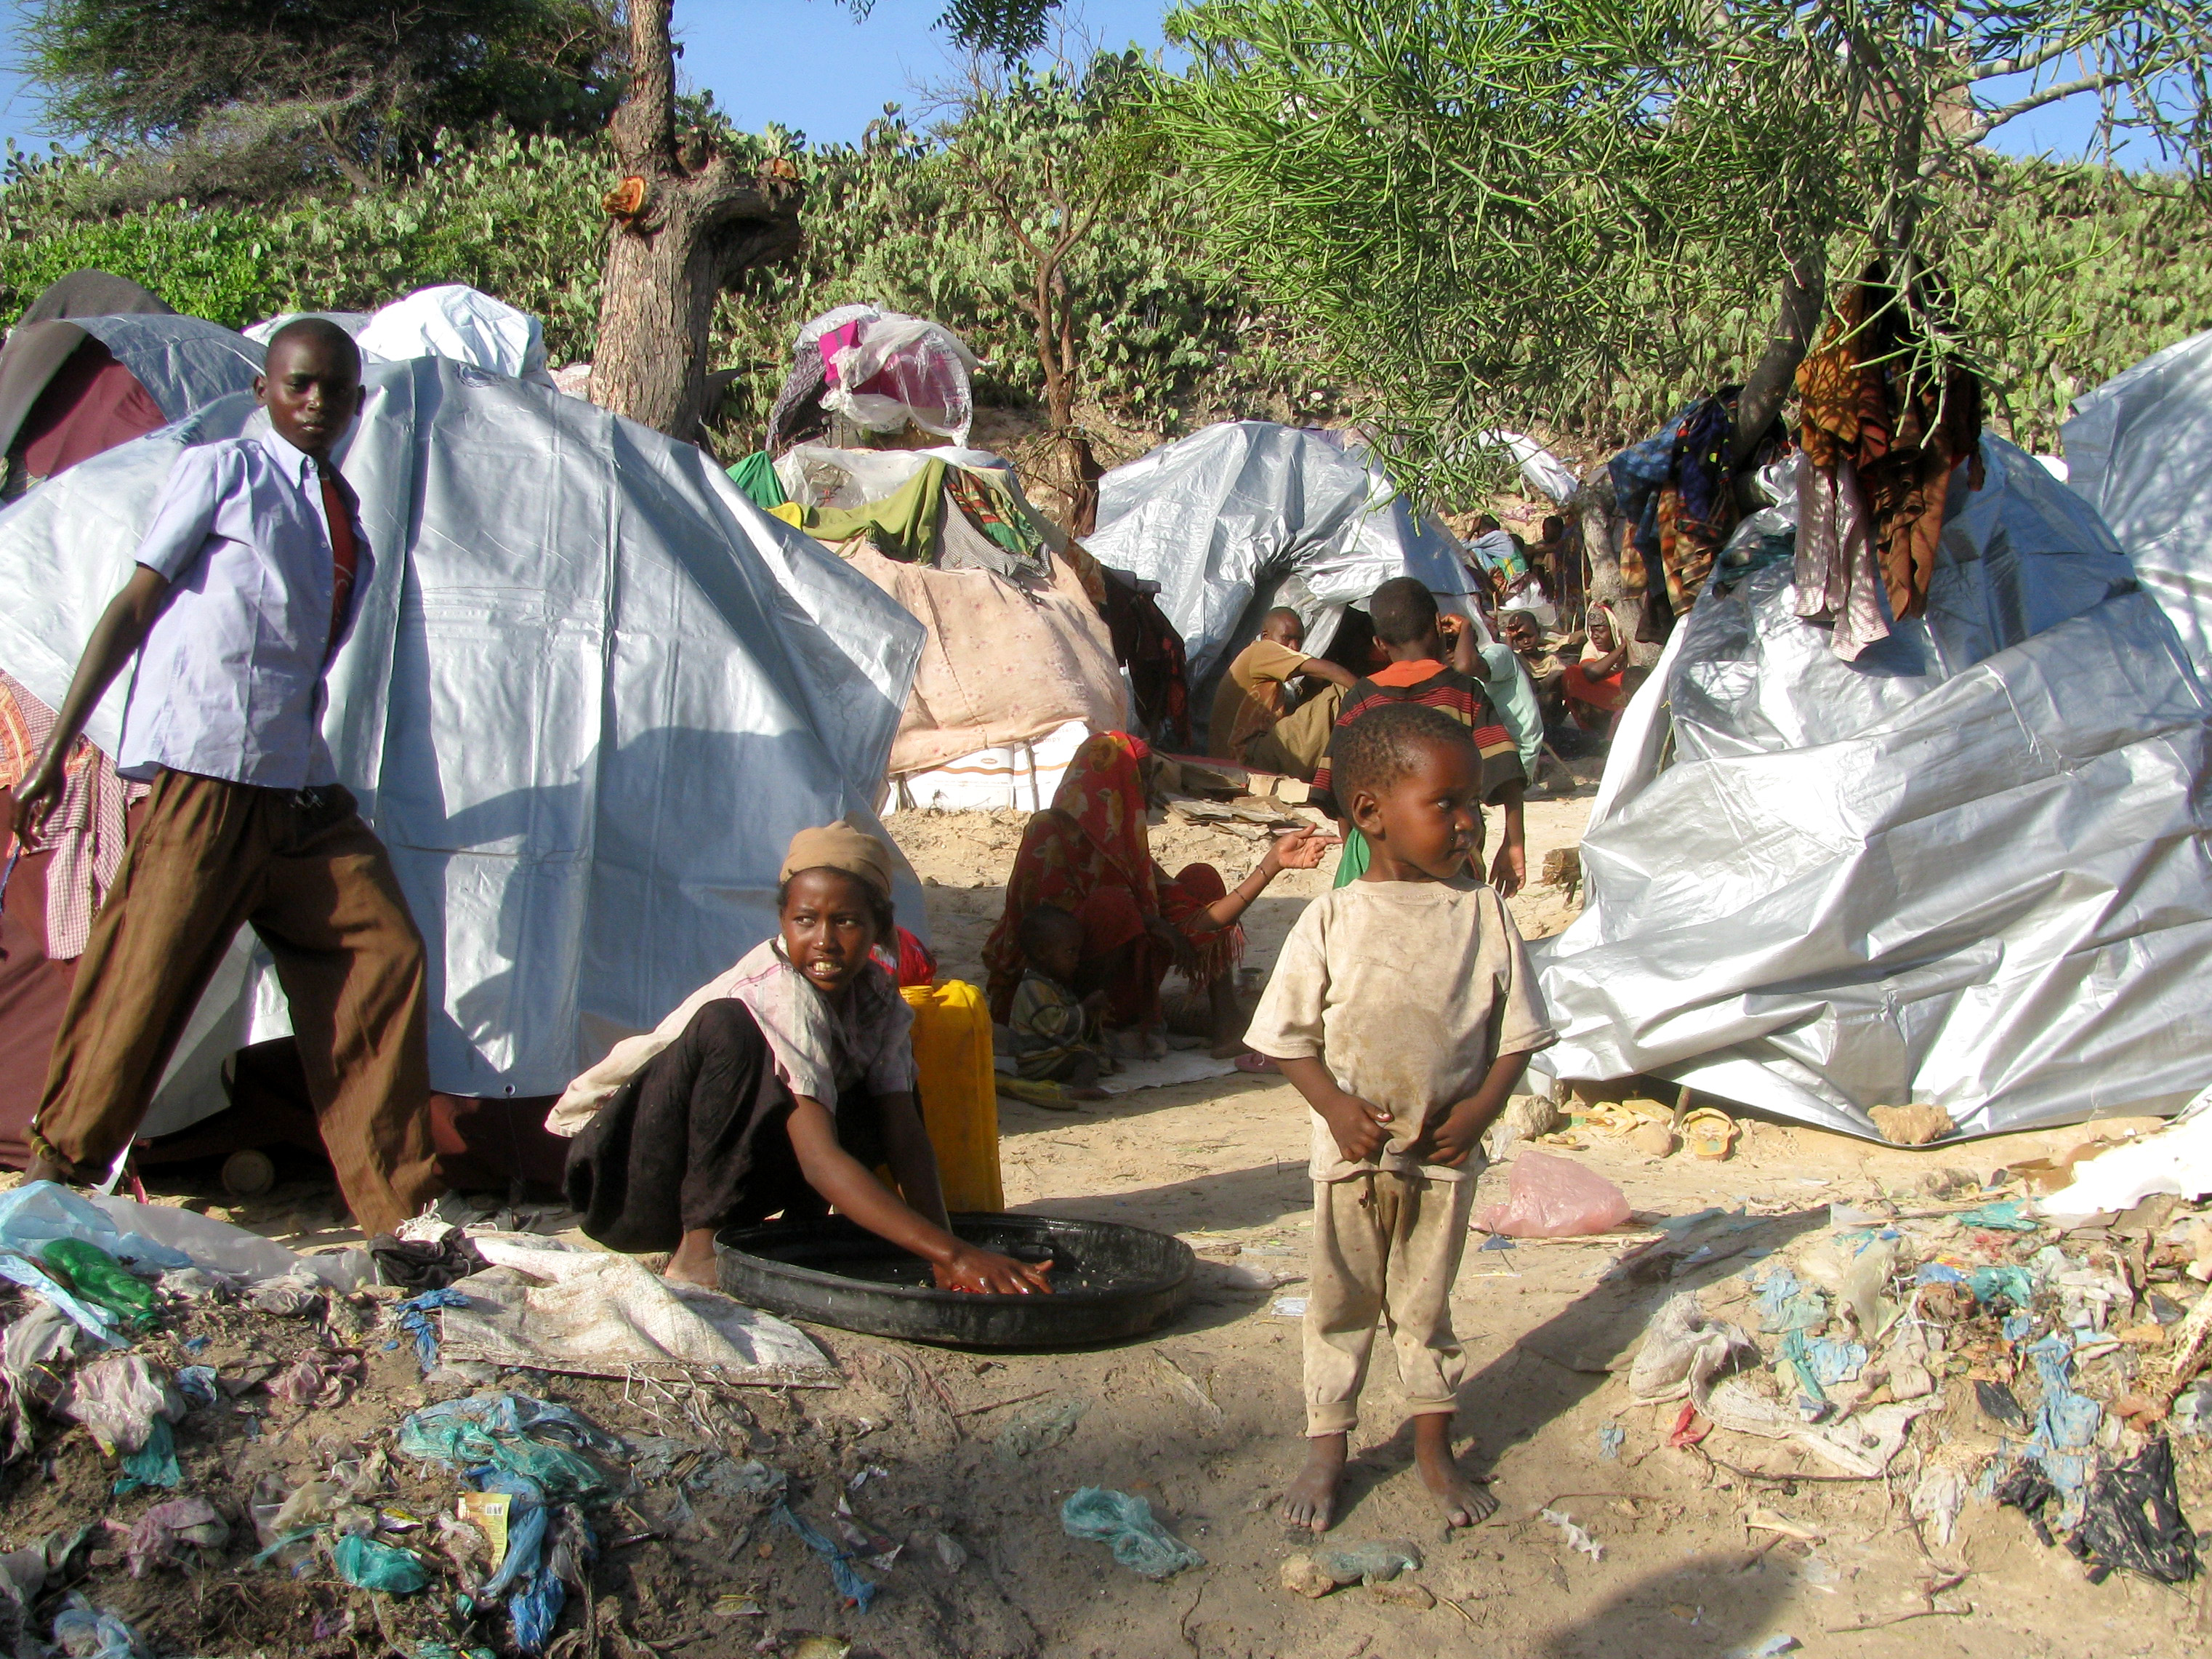 An IDP family in Waberi district, Mogadishu